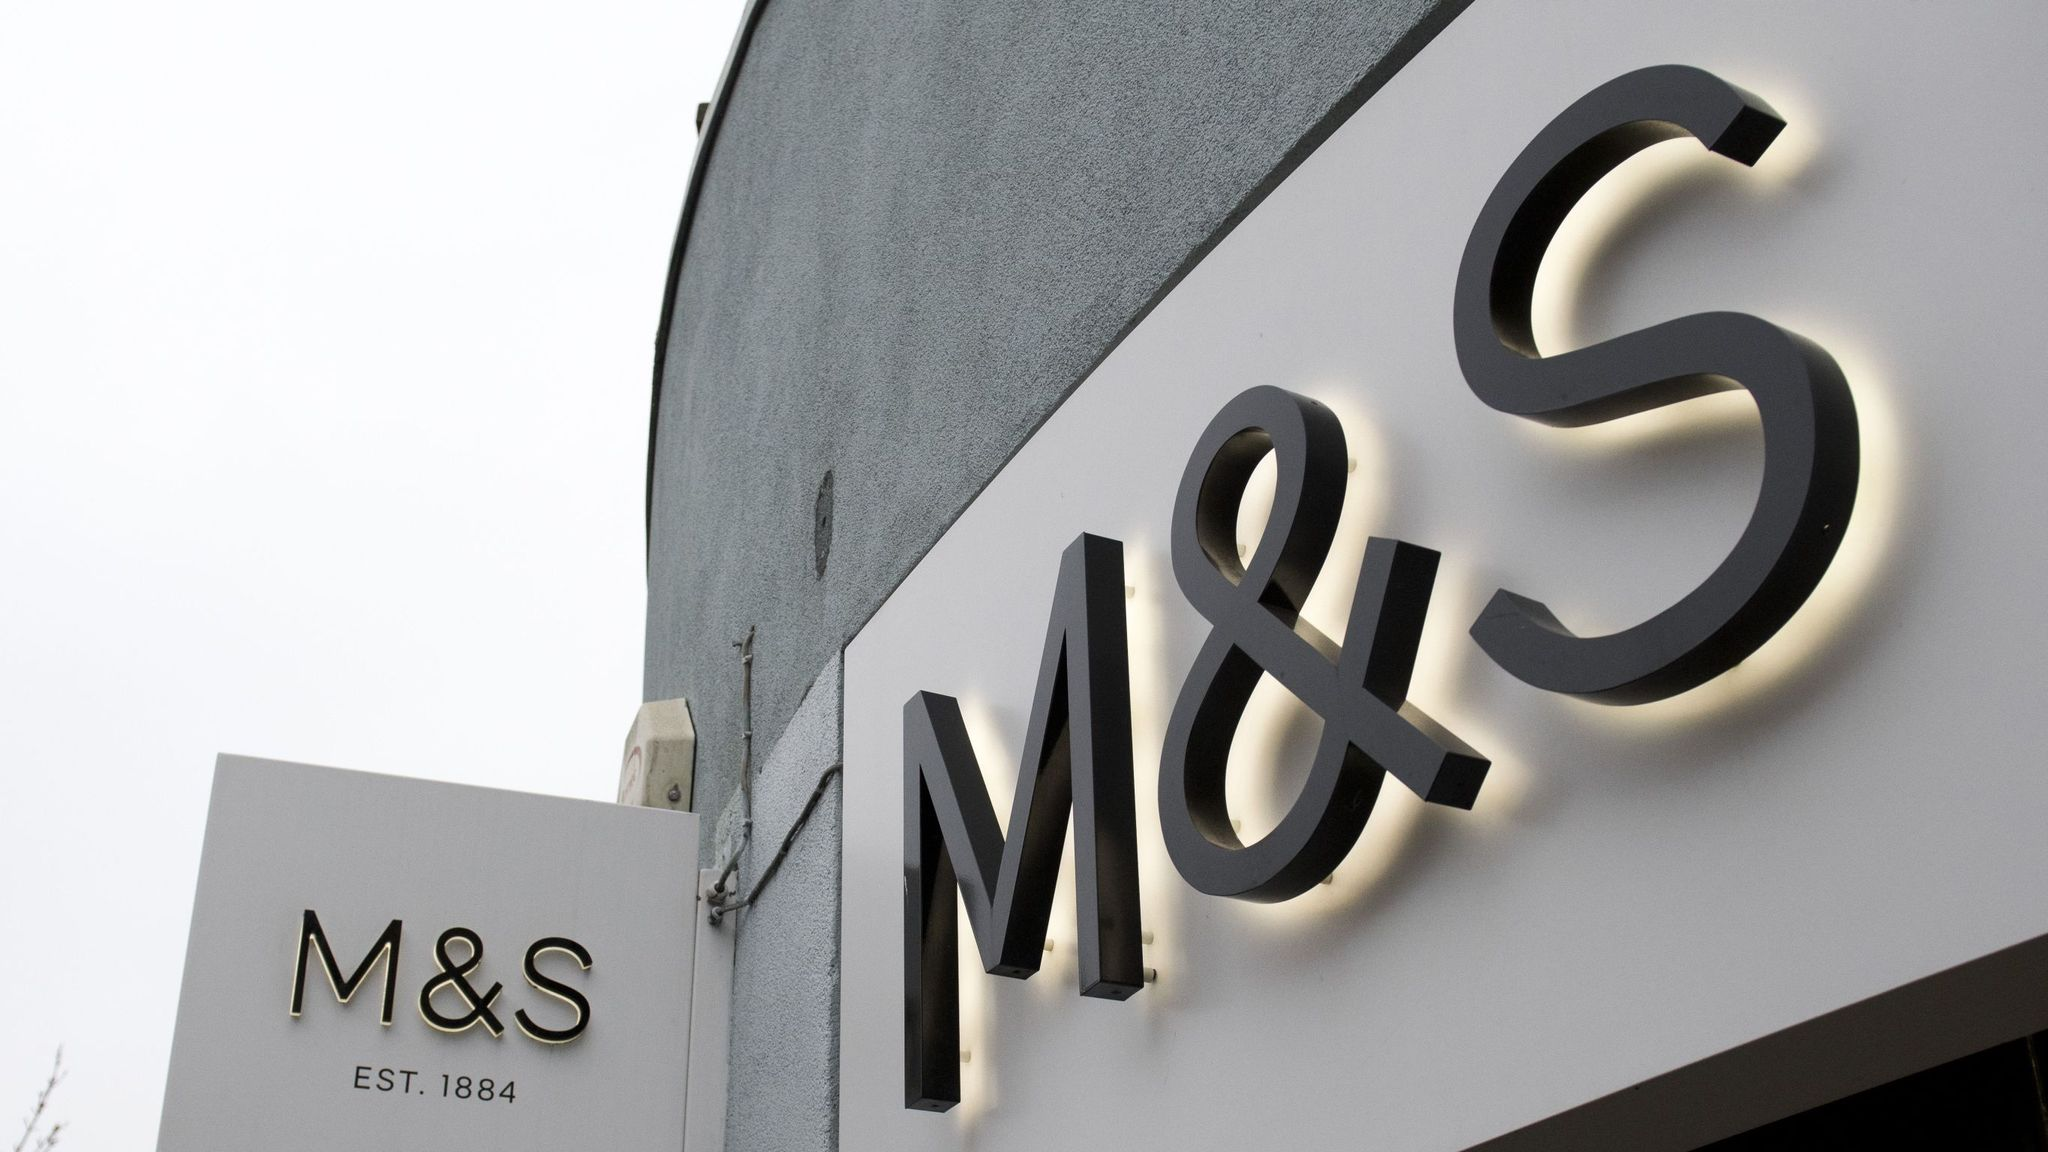 Same old message from M&S - but is there room for optimism this time?